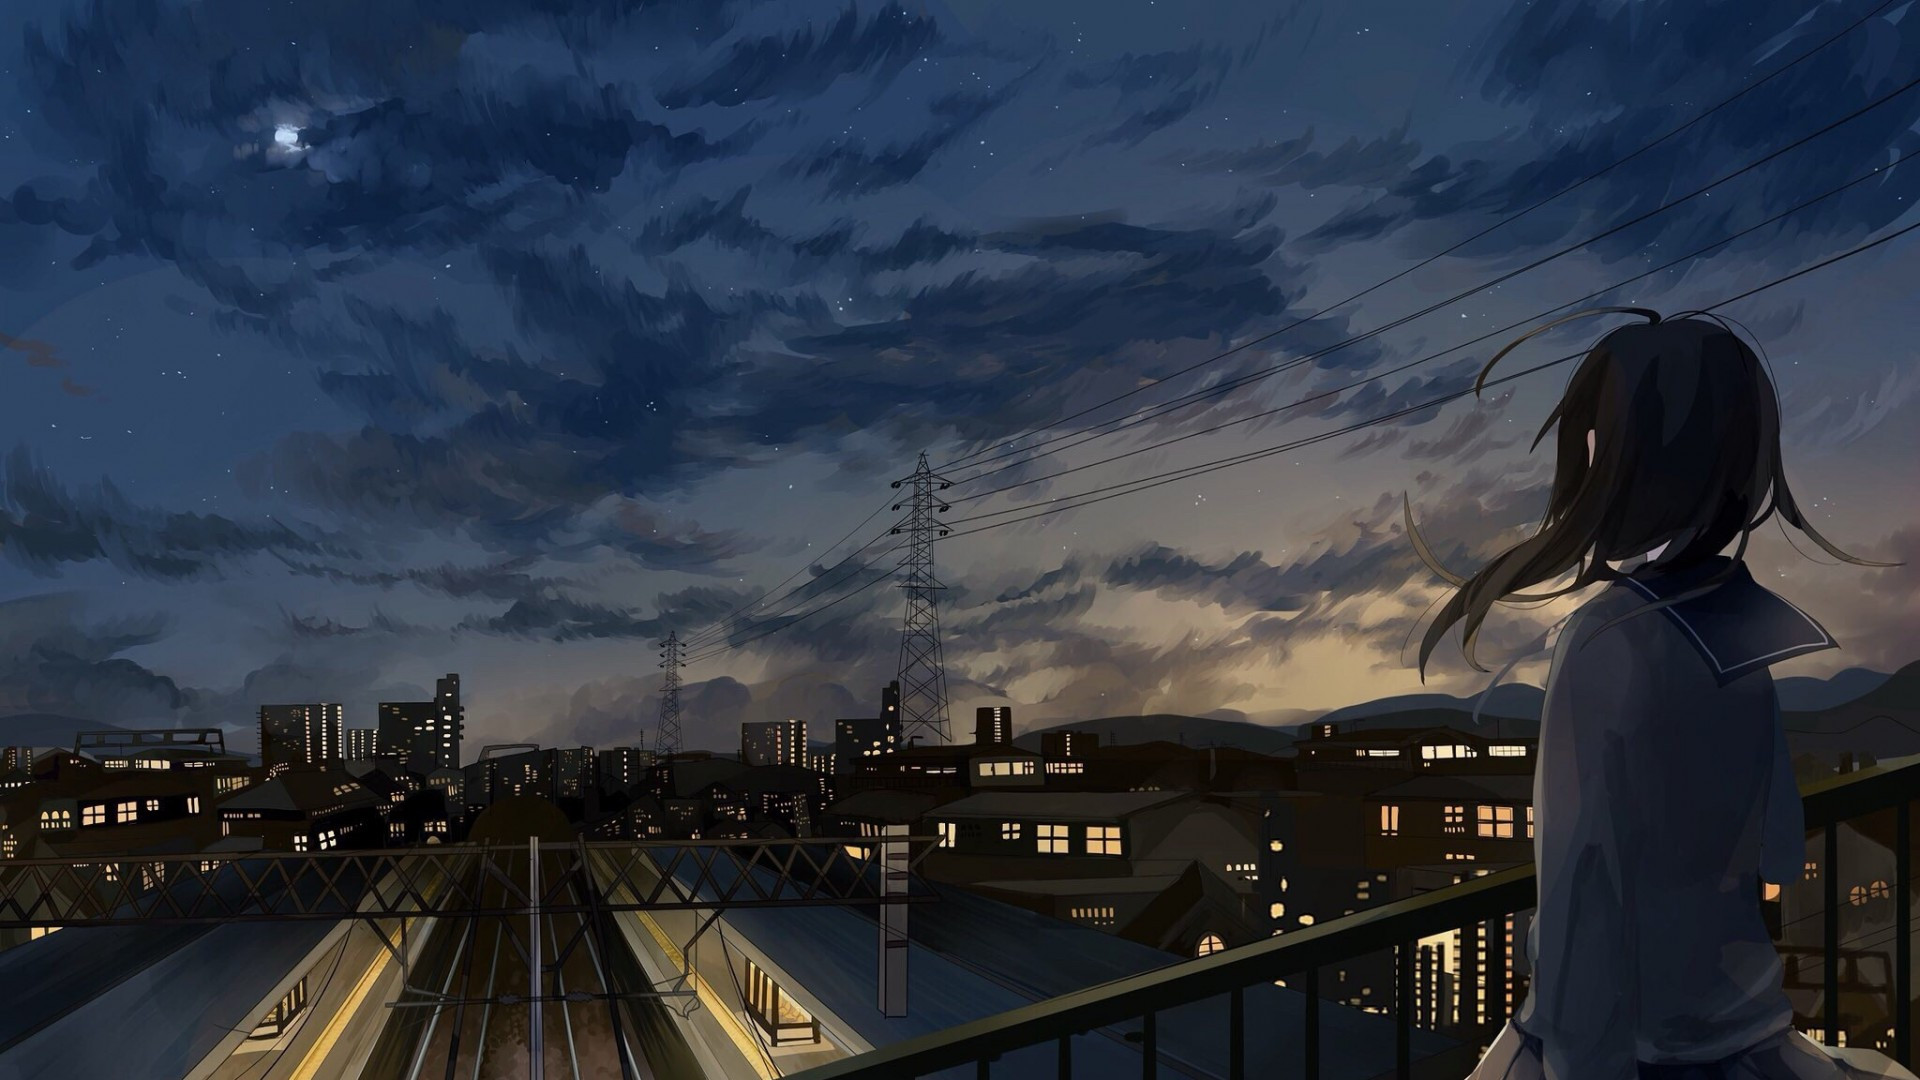 1600x2560 Car Wallpaper Download 1920x1080 Anime Girl City Night Clouds Back